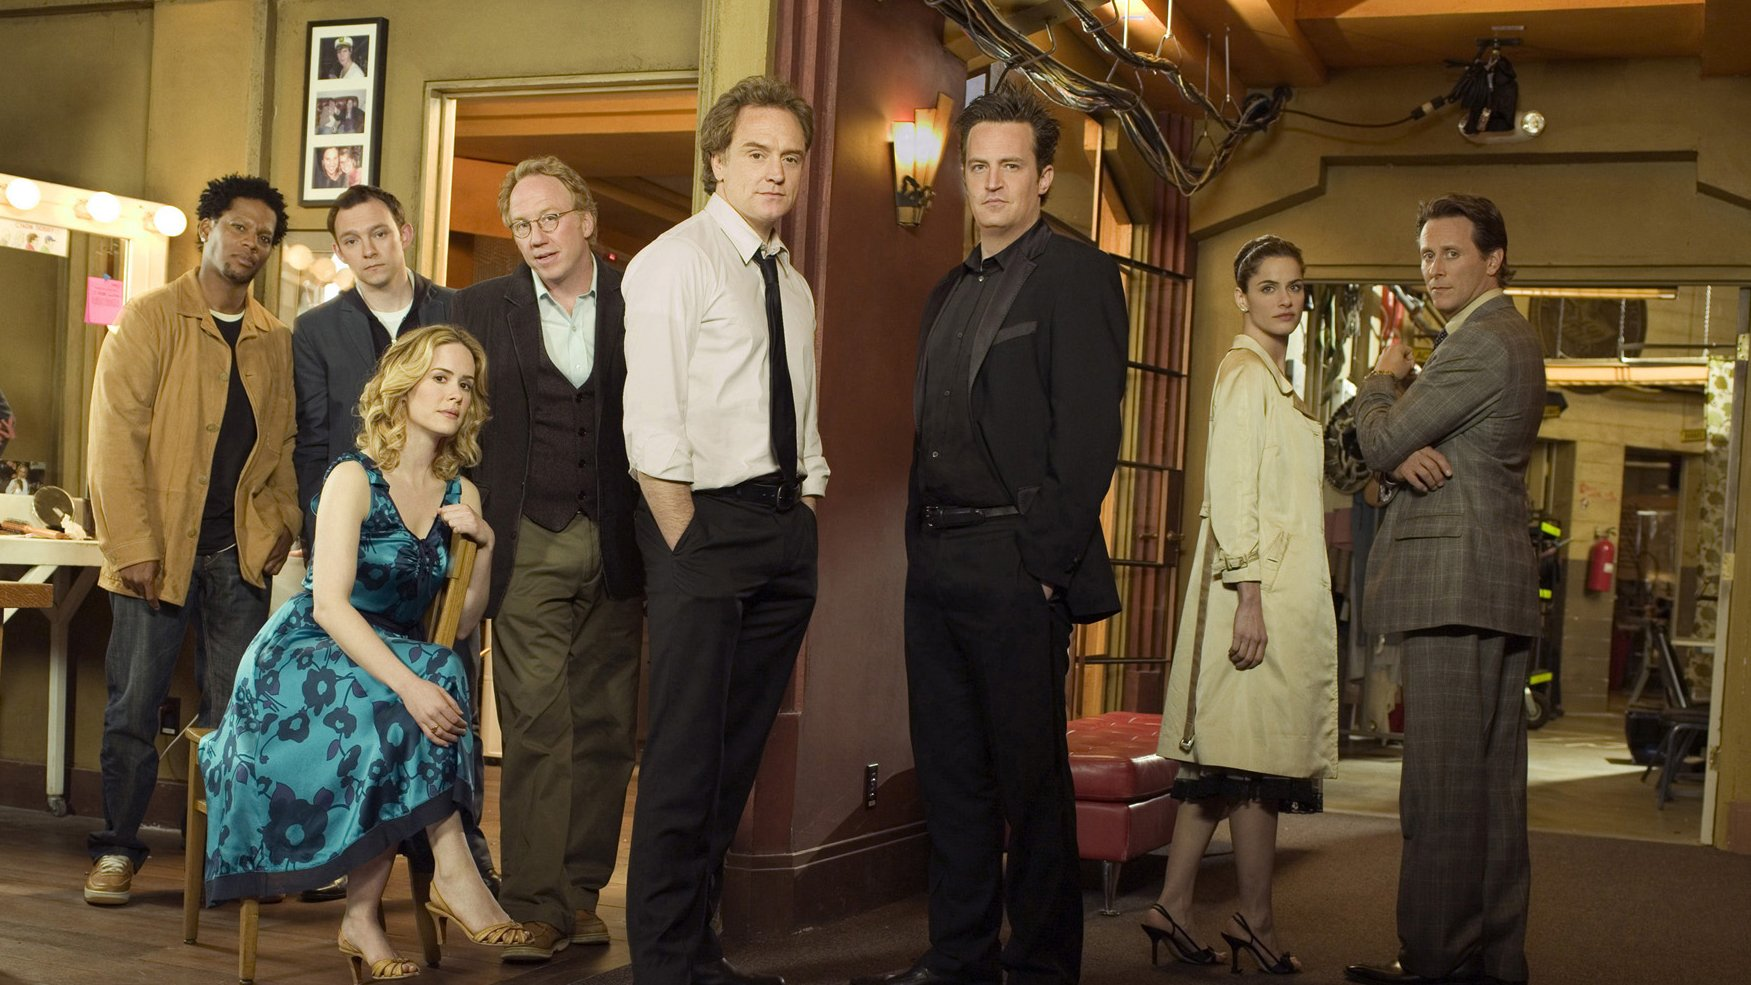 Walking and Talking: The Quick Wit and False Heart of Aaron Sorkin's Studio 60 on the Sunset Strip